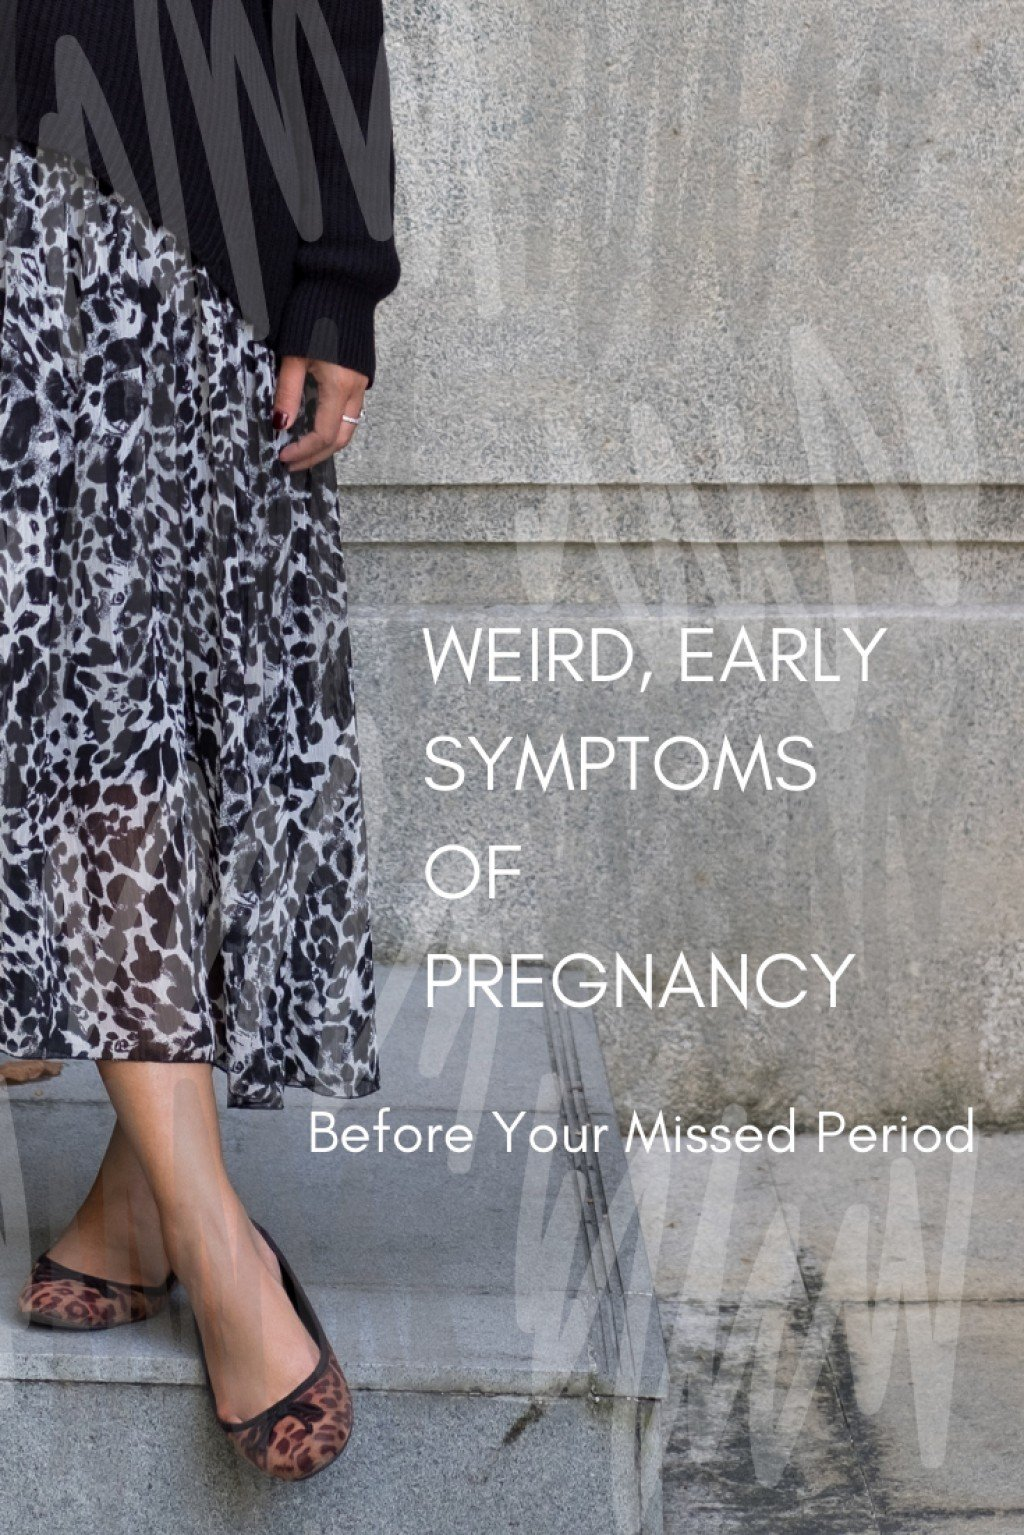 18 Weird Early Pregnancy Symptoms Before Your Missed Period